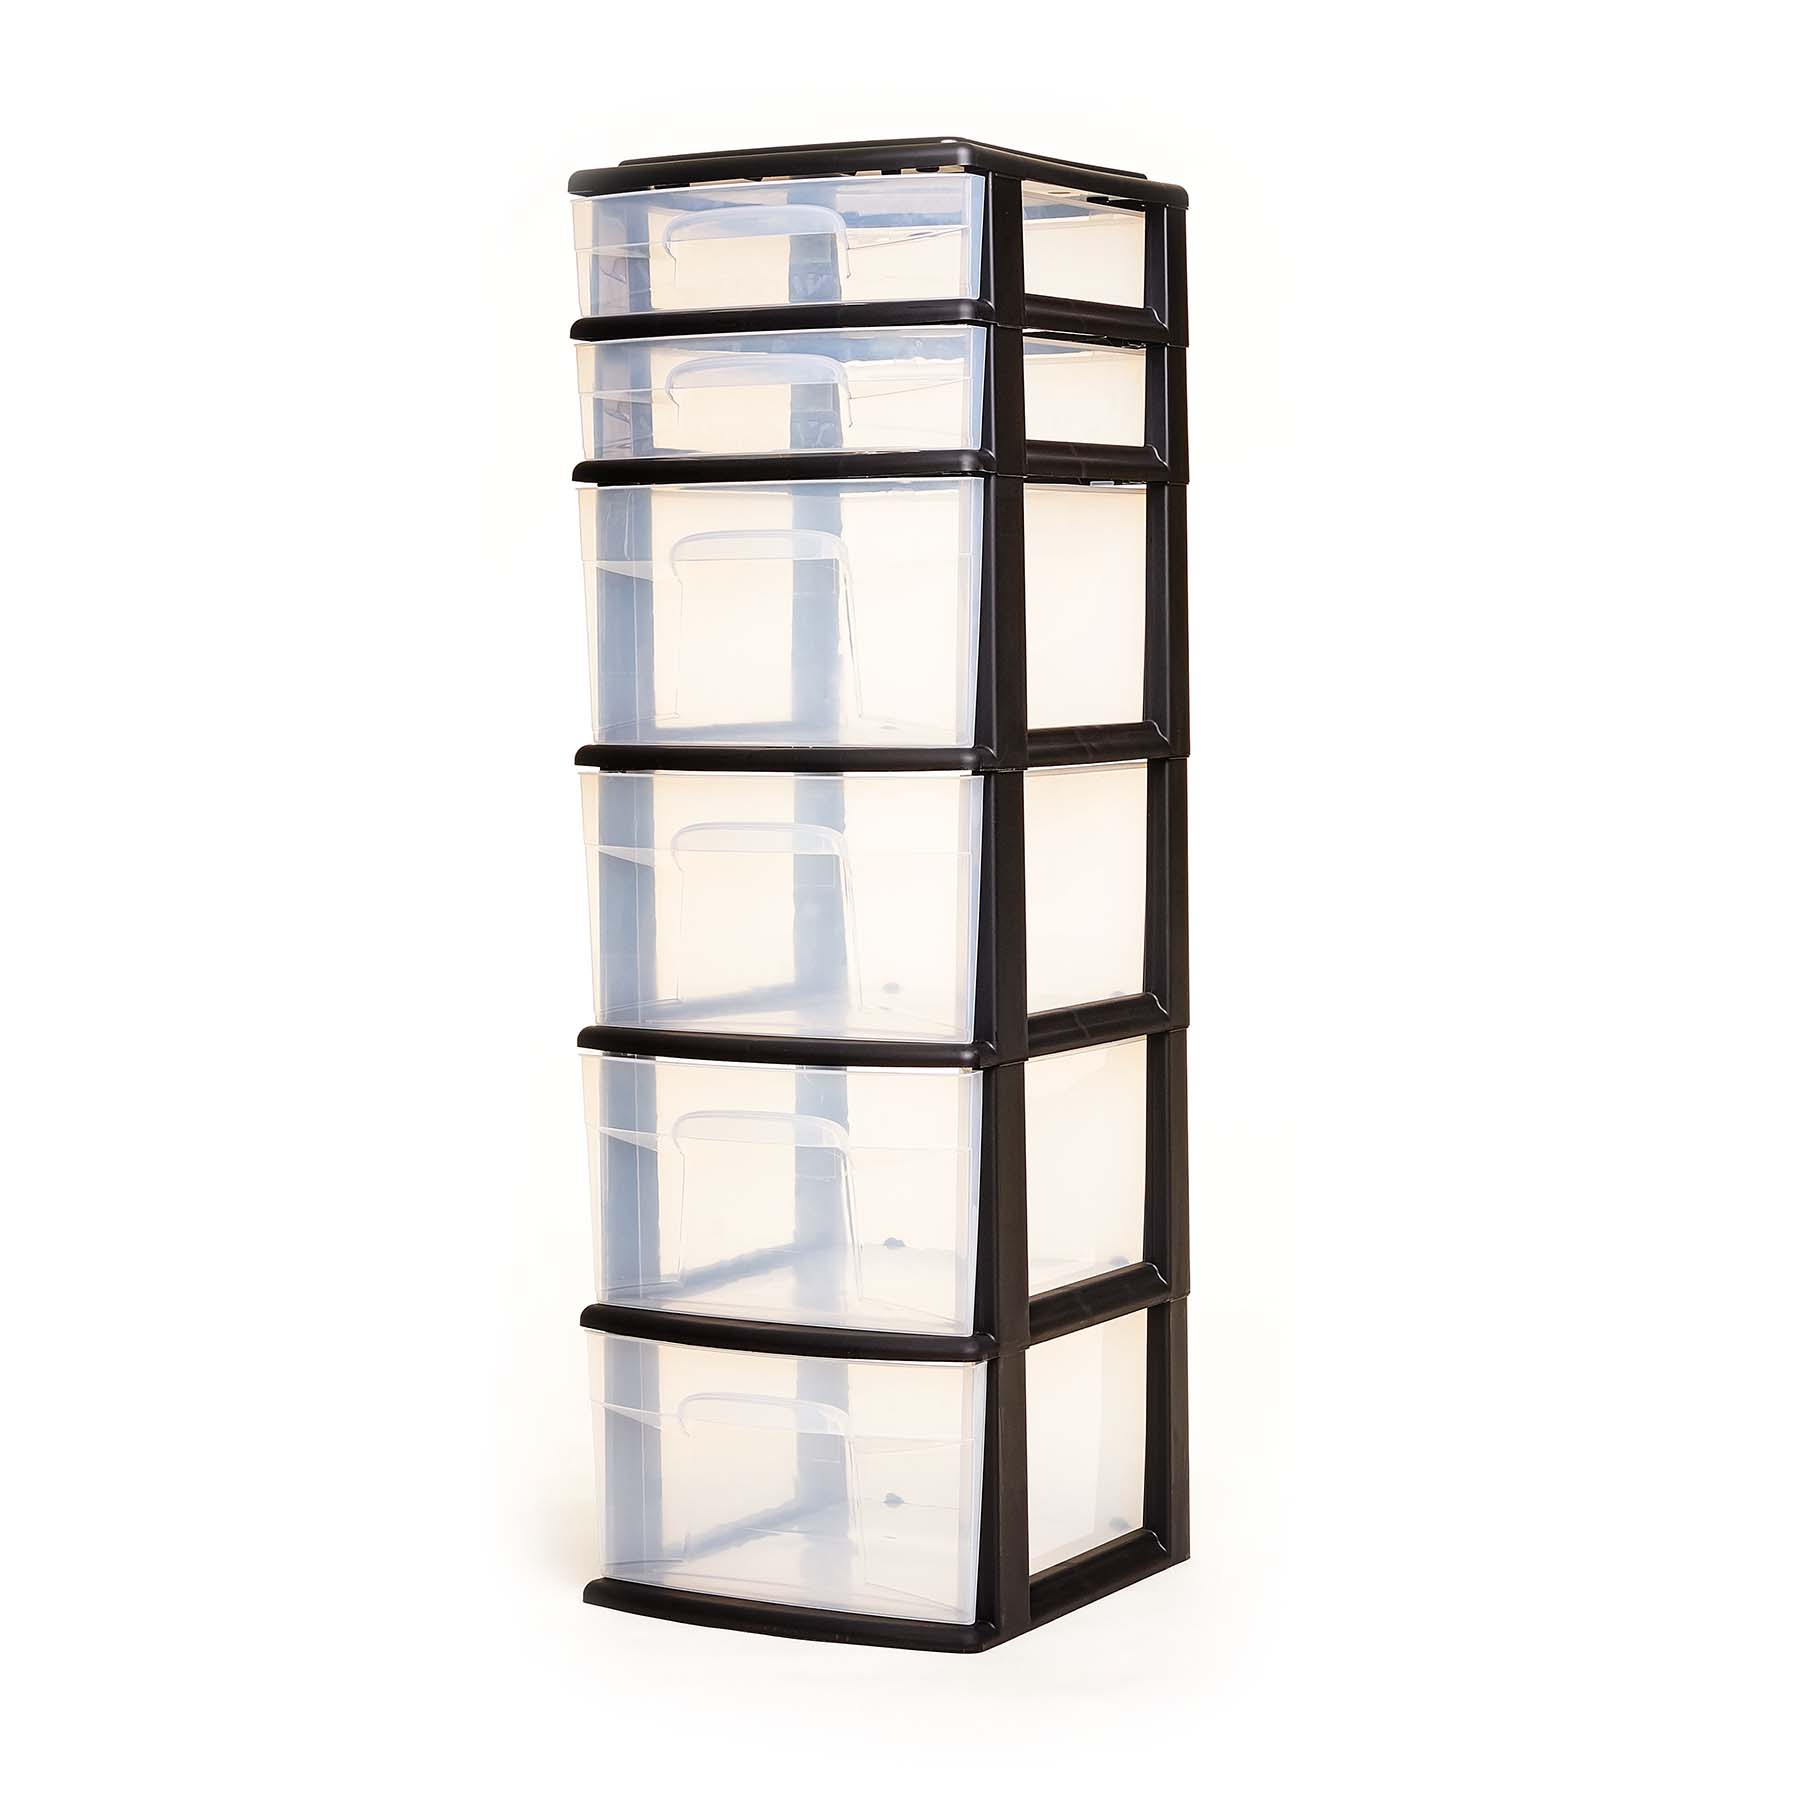 Homz 6 Drawer Medium Tower, Set of 1